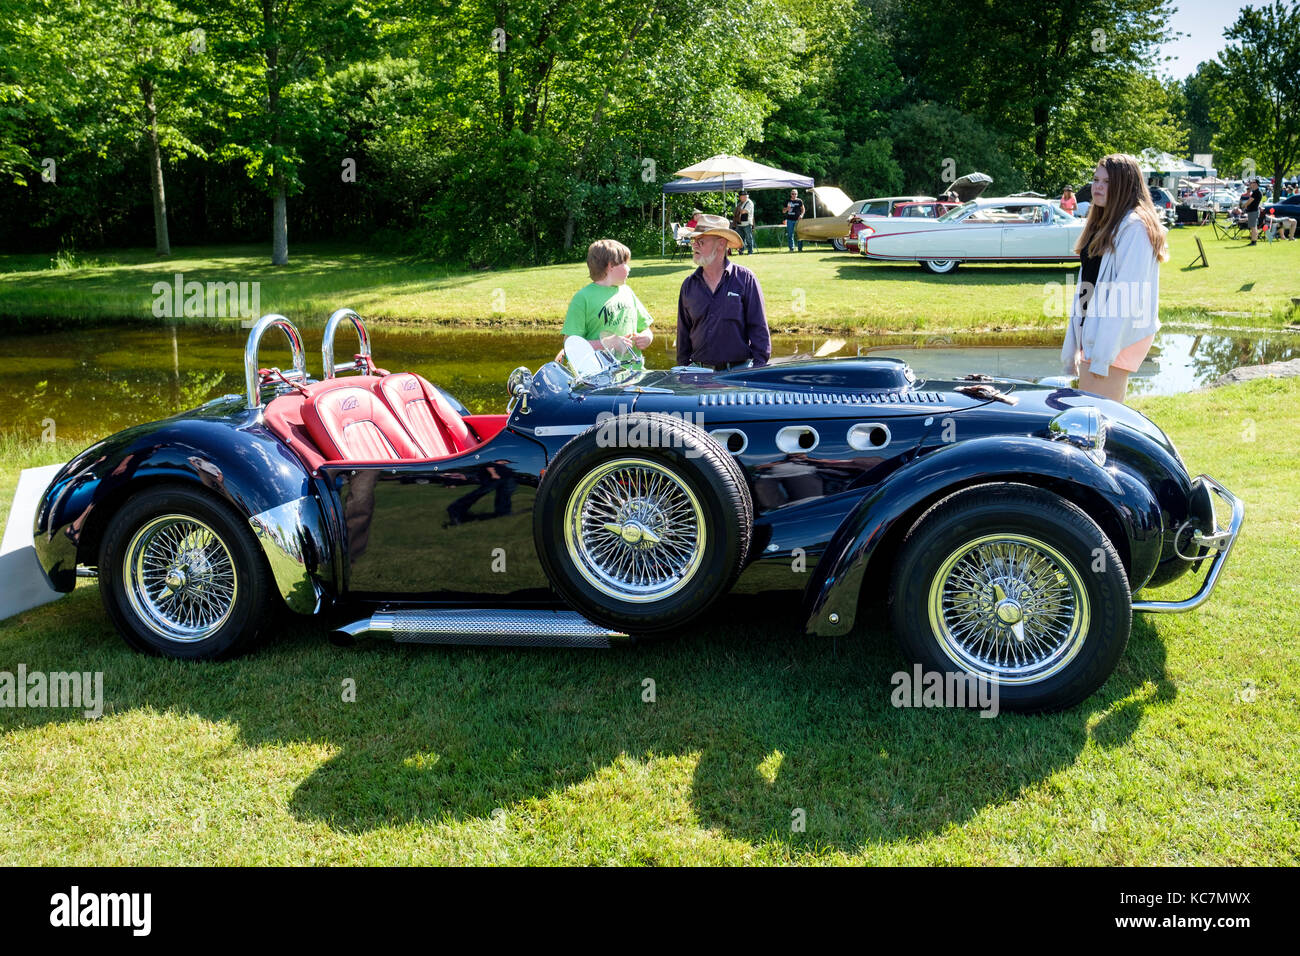 Side view of the Allard J2X MK II, modern version of the 1950s British competition roadster, Fleetwood Country Cruize - Stock Image